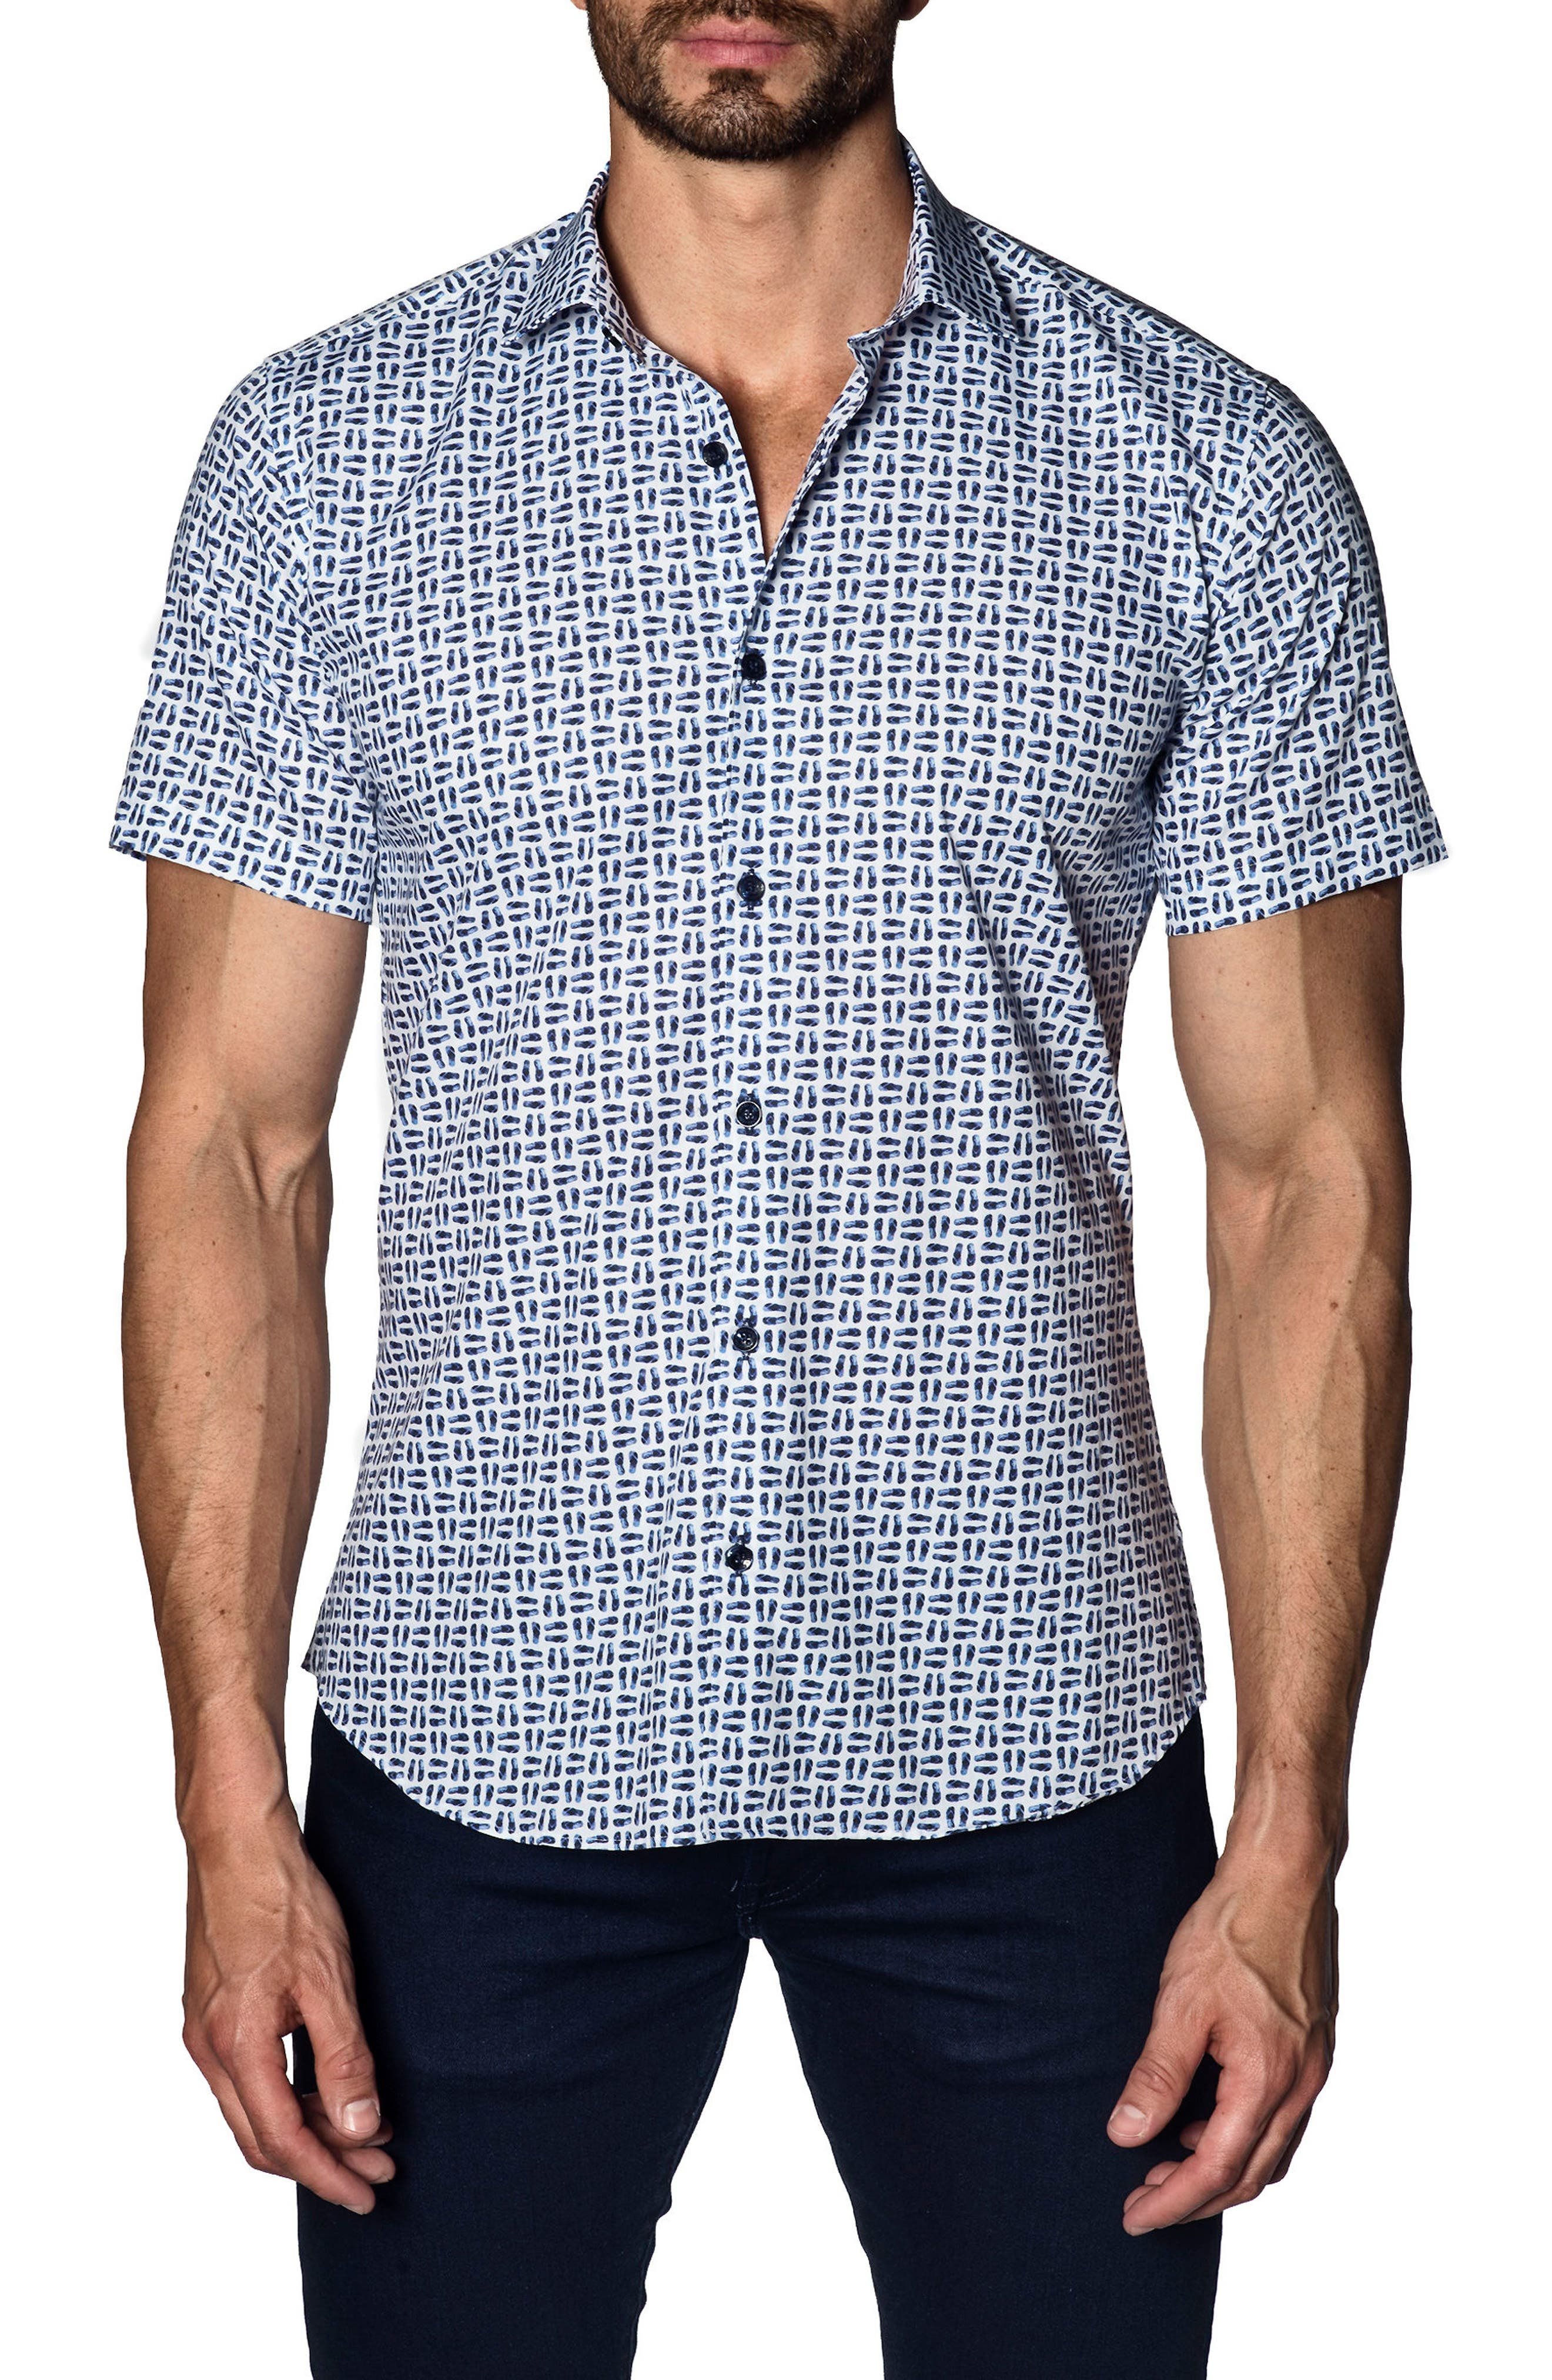 Jared Lang Sunglasses Print Sport Shirt Cheap Lowest Price Discount Pay With Visa Pictures Cheap Online Online Cheapest K3WBdLWh